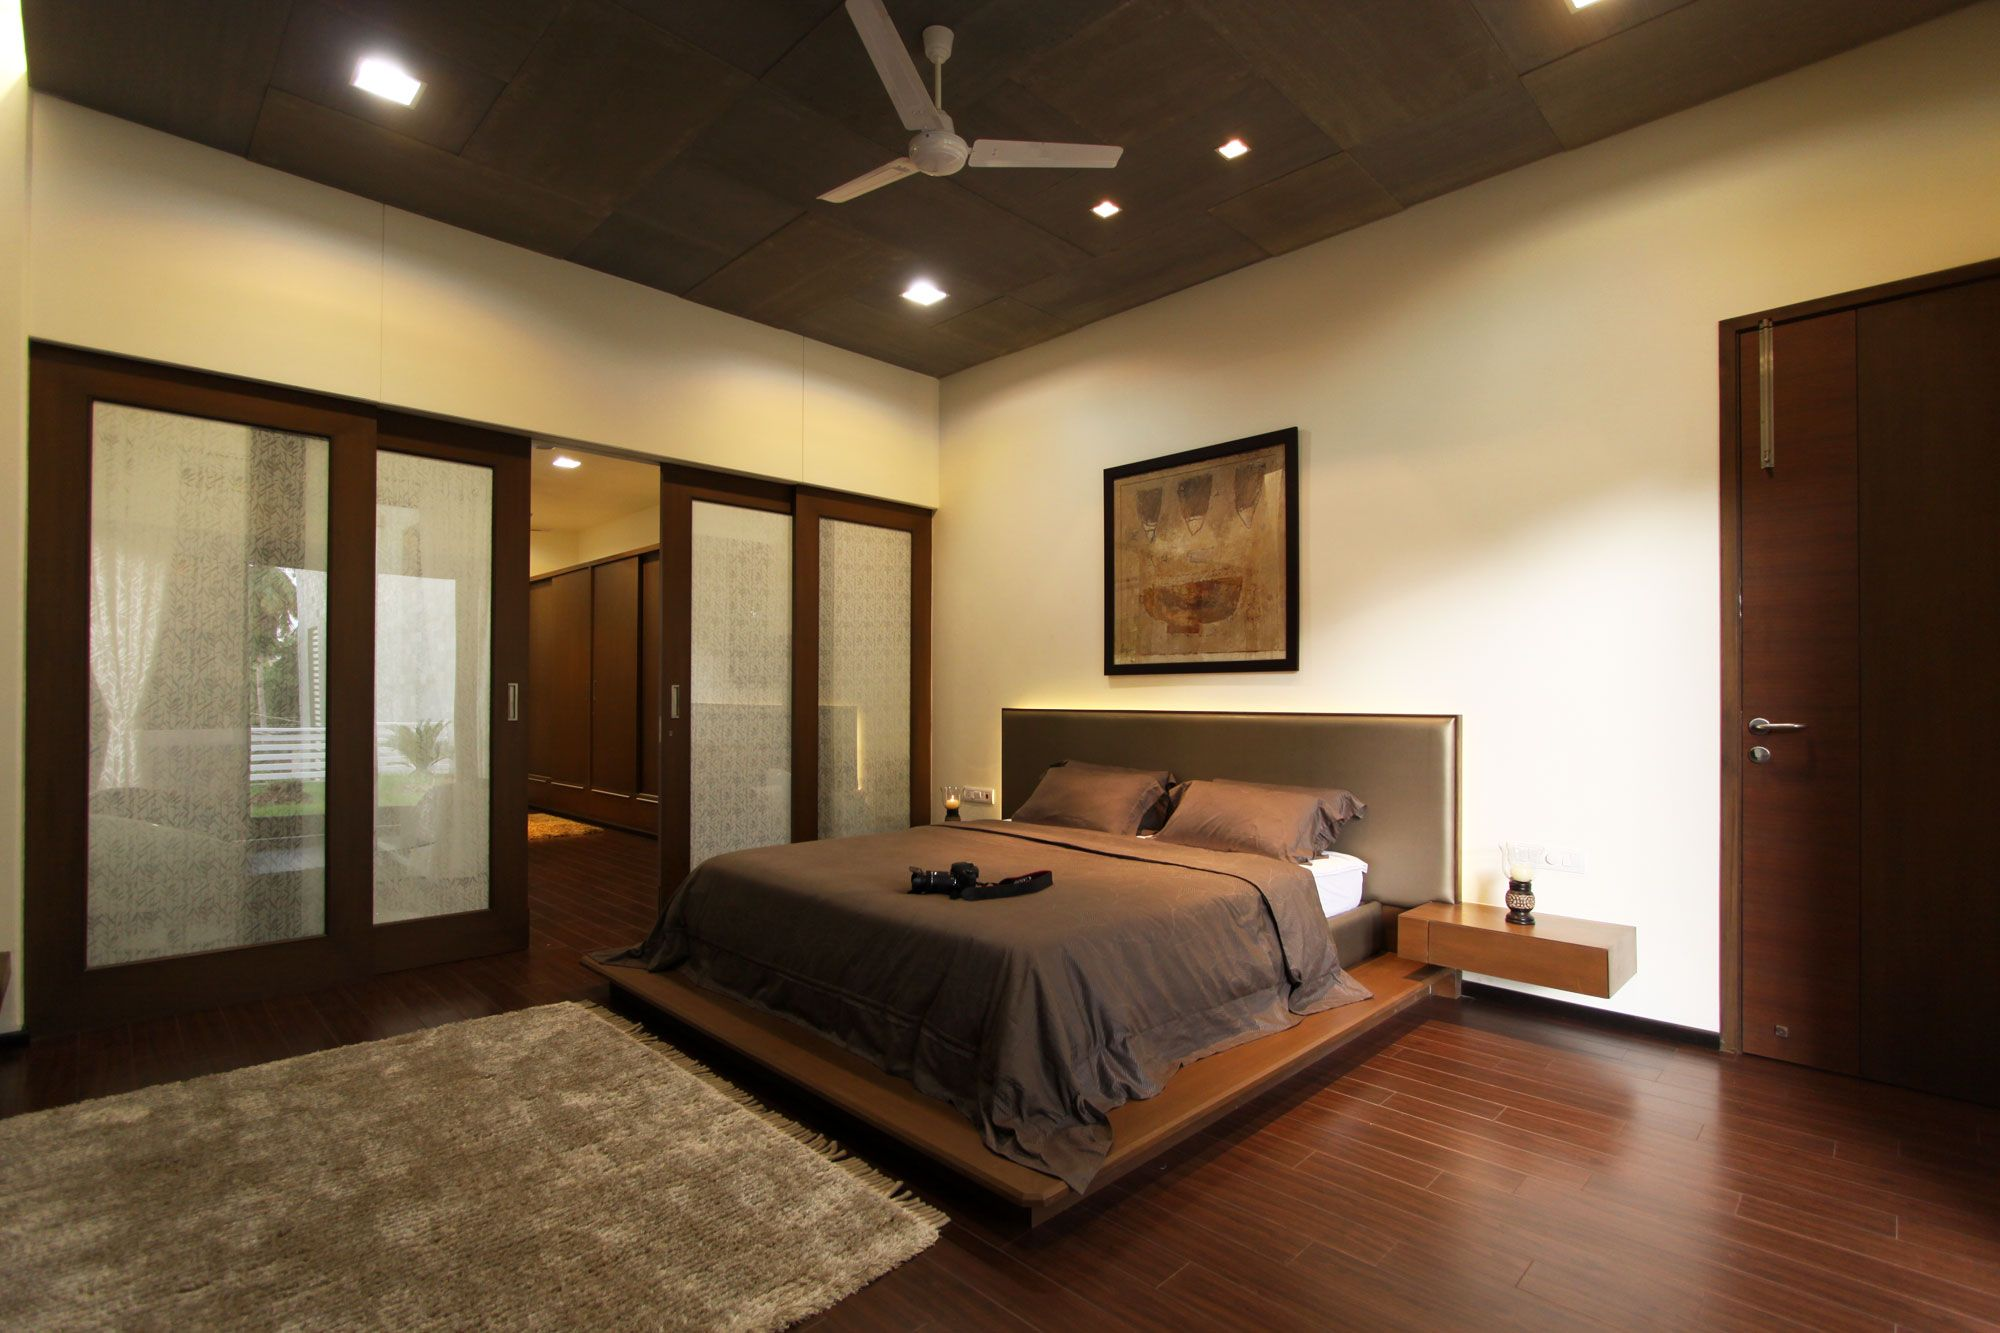 Simple Ceiling Fan Calm Ceiling Color In Brown Bedroom Ideas